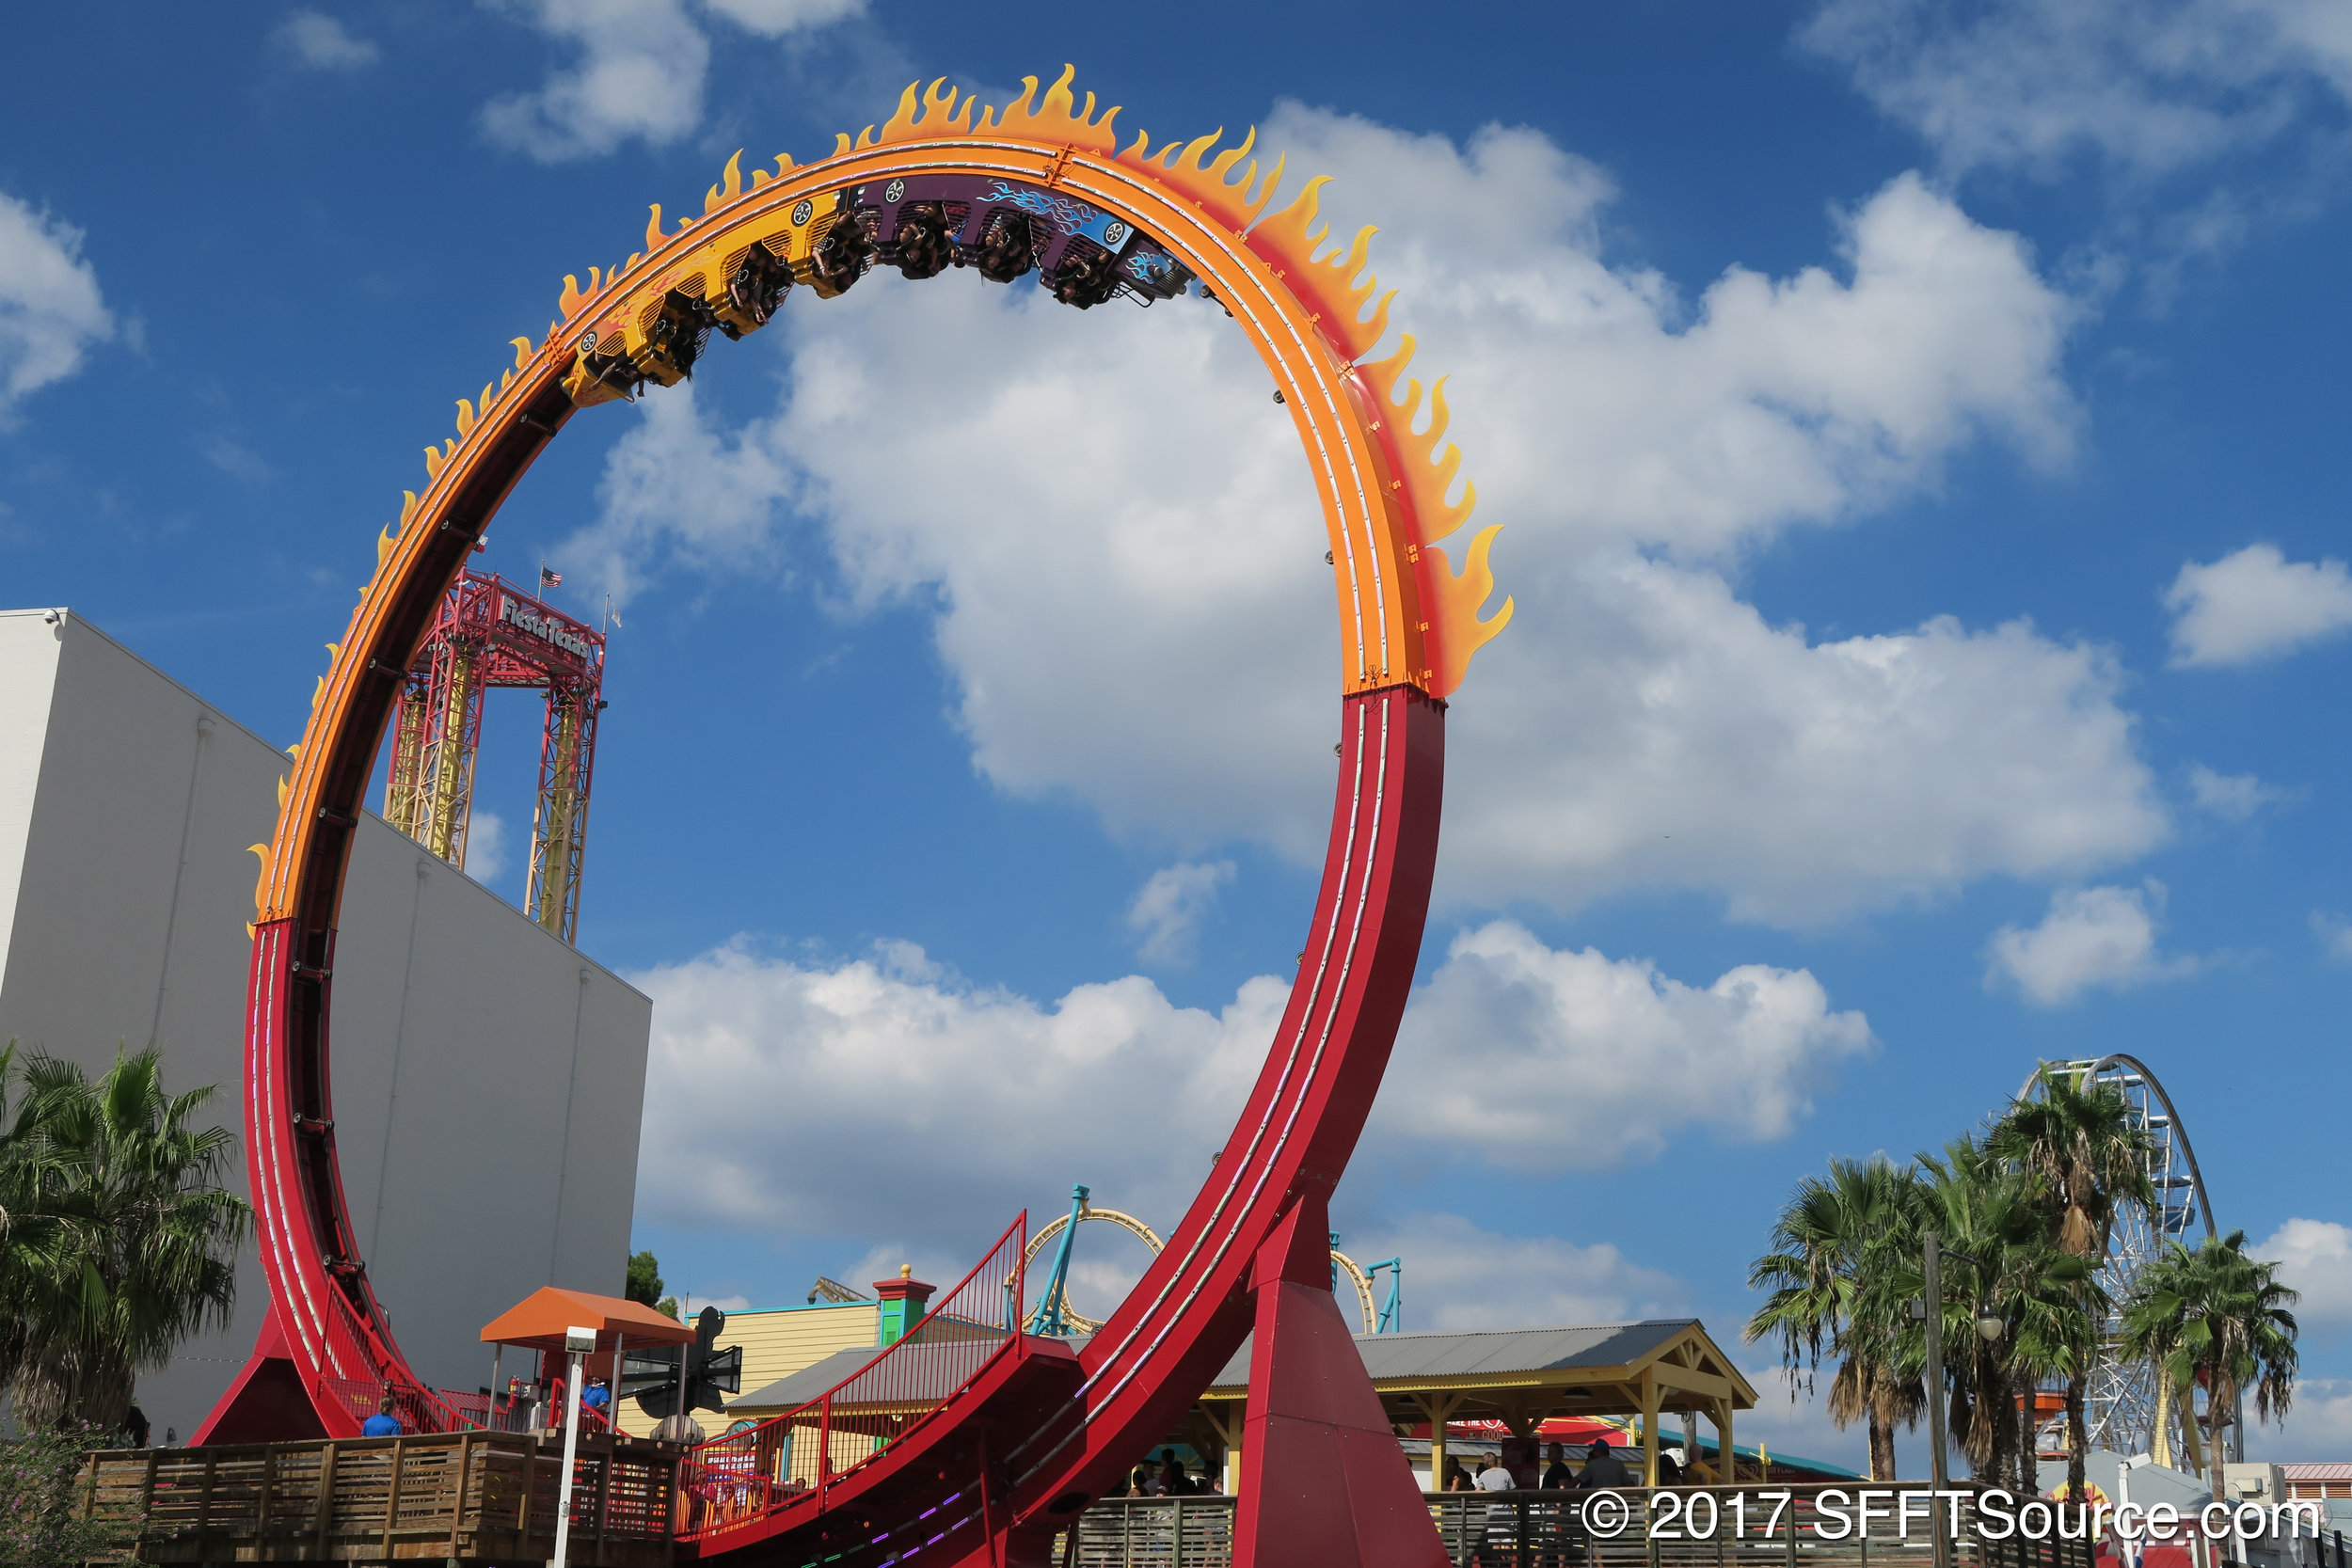 Lone Star Revolution will be much like Six Flags Fiesta Texas' Fireball attraction shown above.